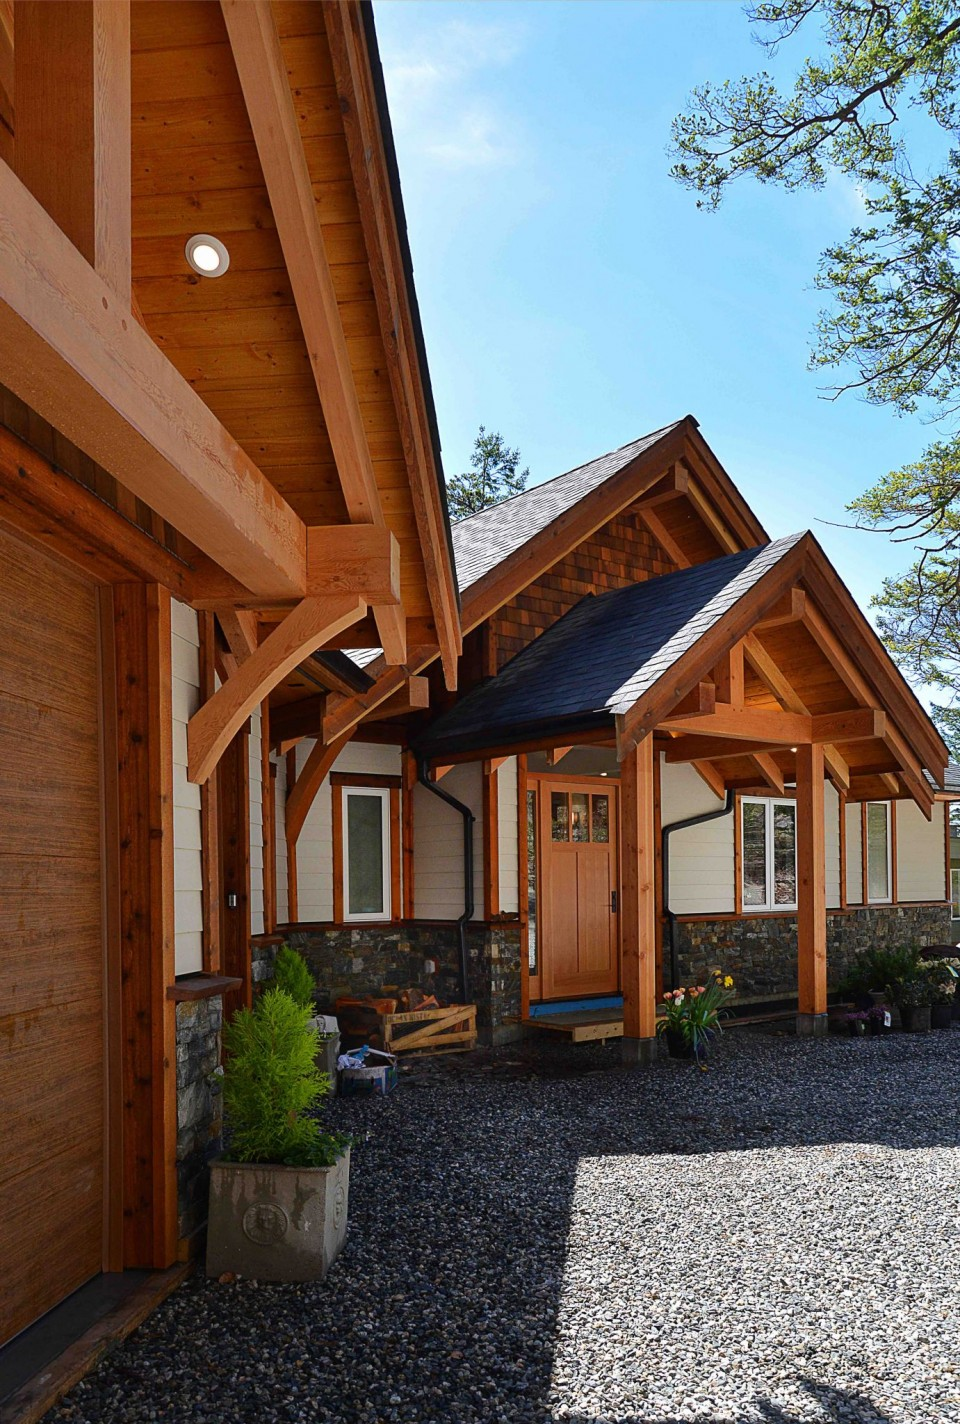 A sideview of the outside of a timber frame home